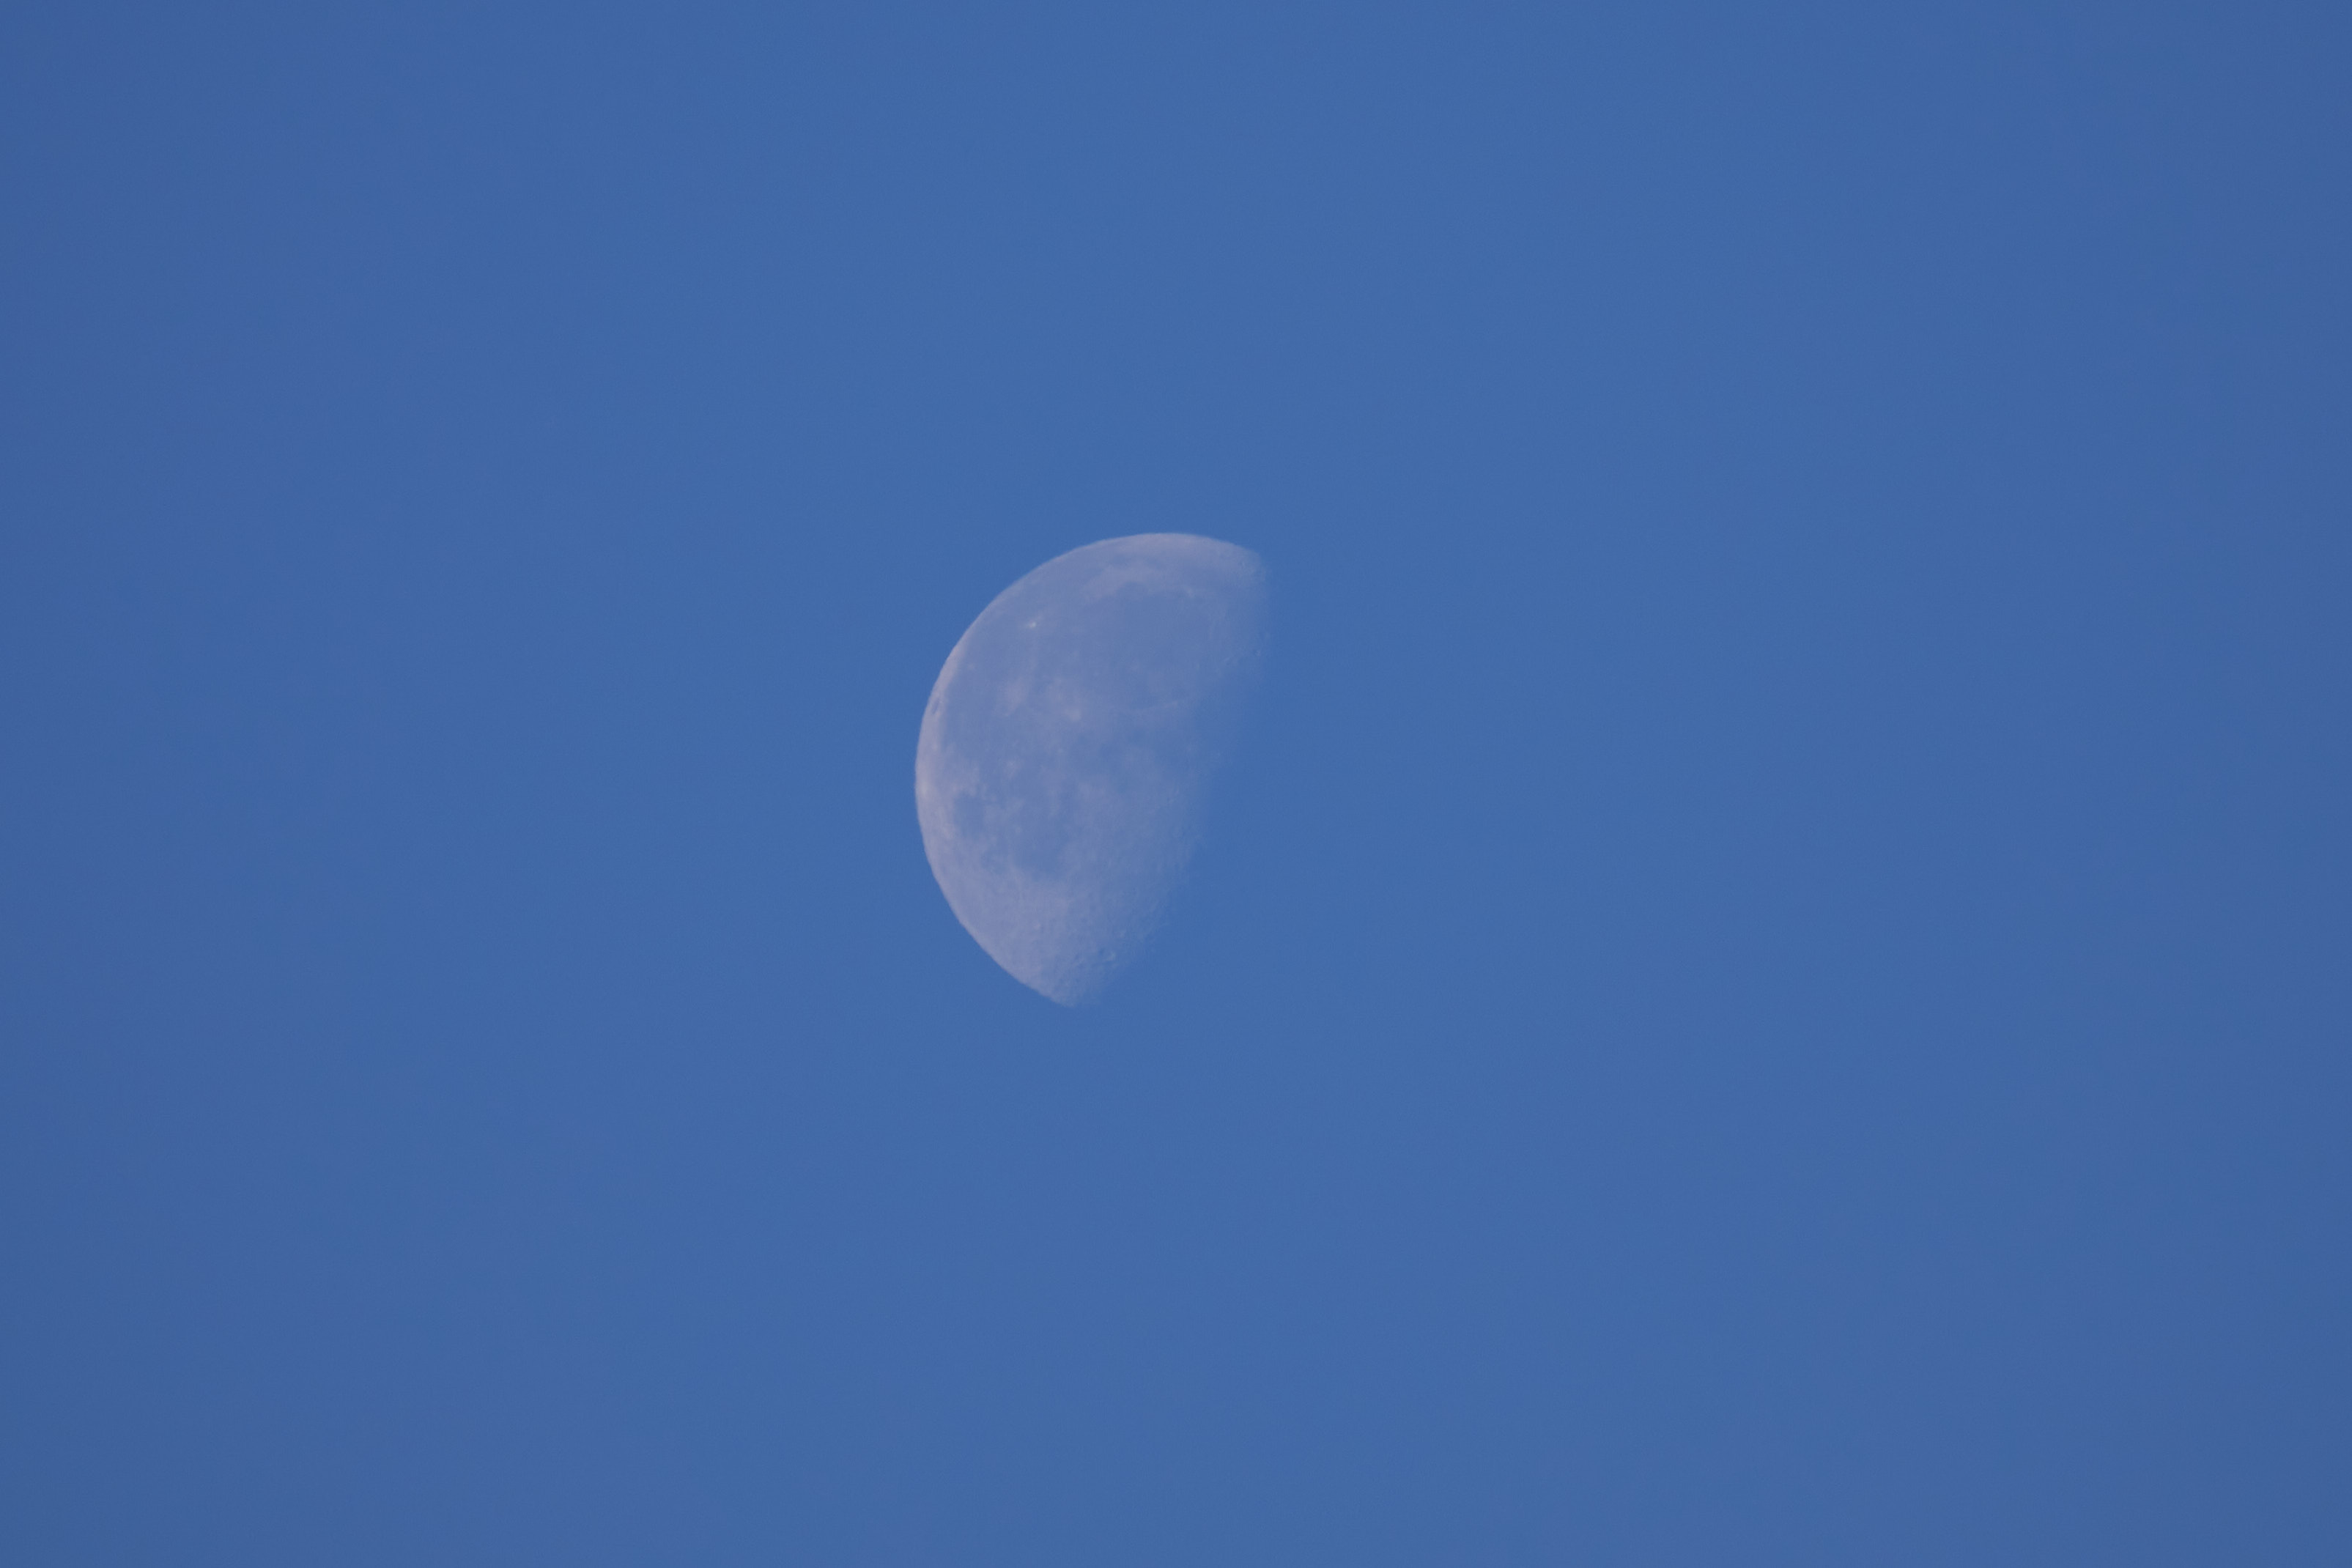 Moon visible against blue sky.